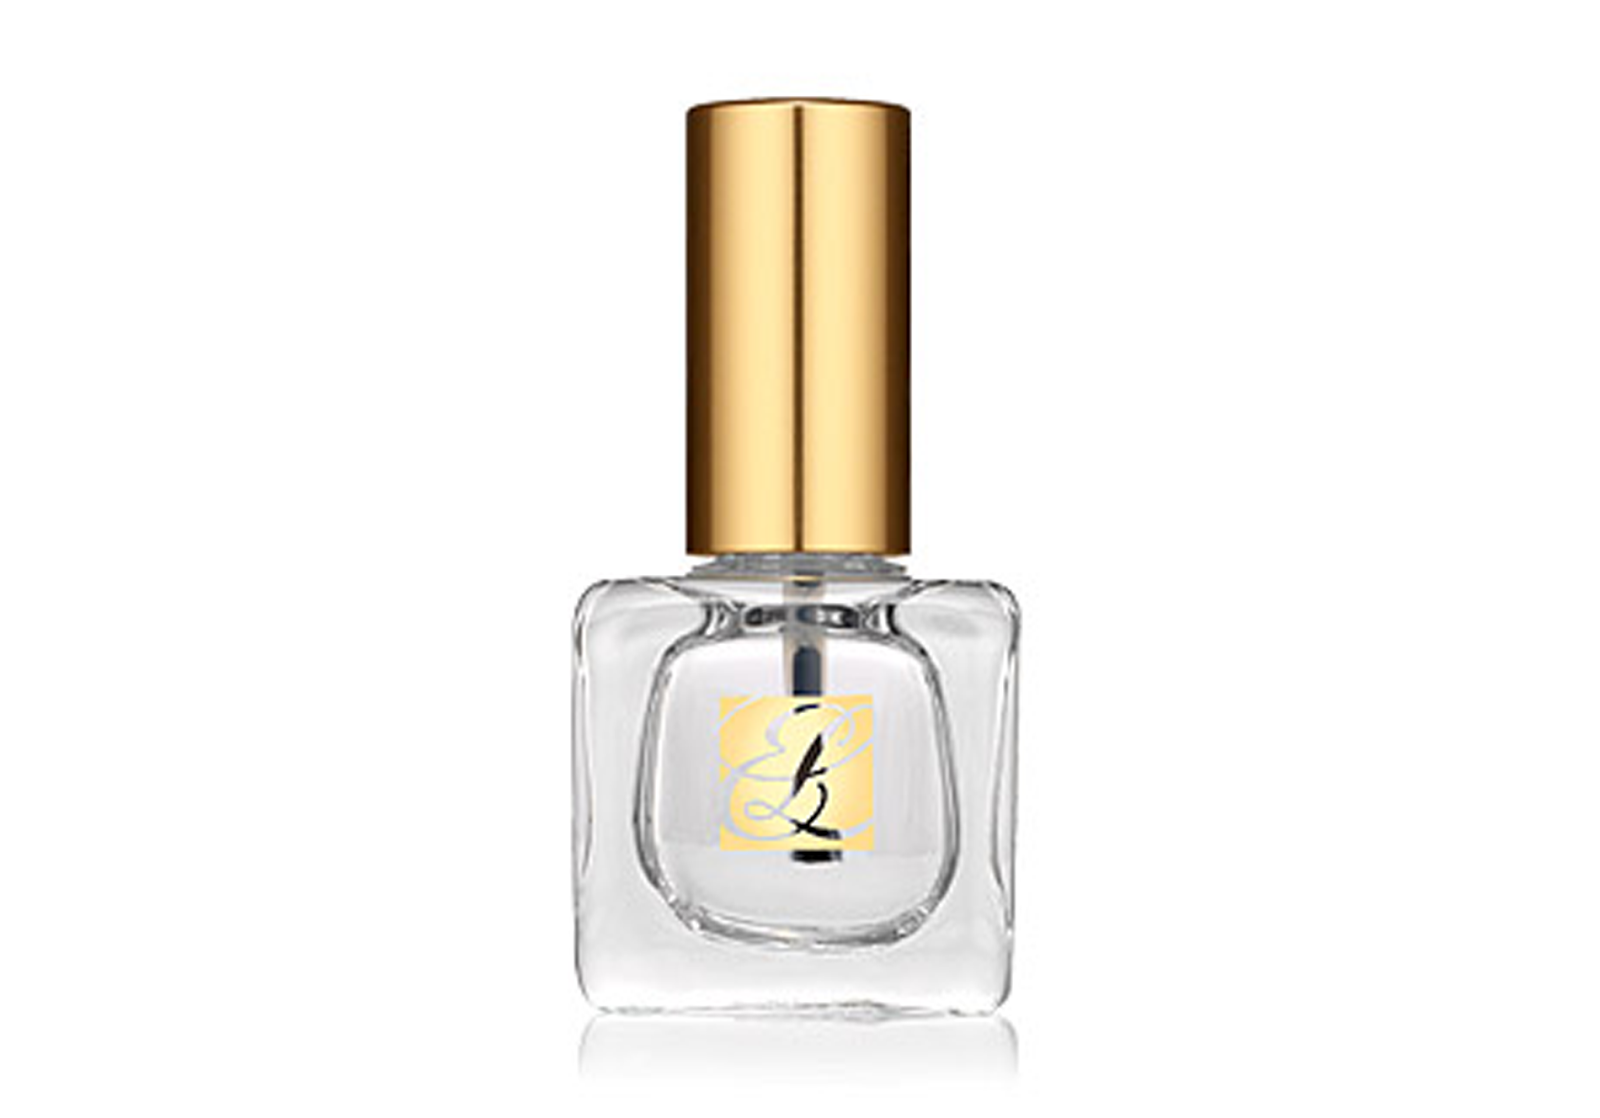 Instant Finish Quick Dry Topcoat Nail Polish